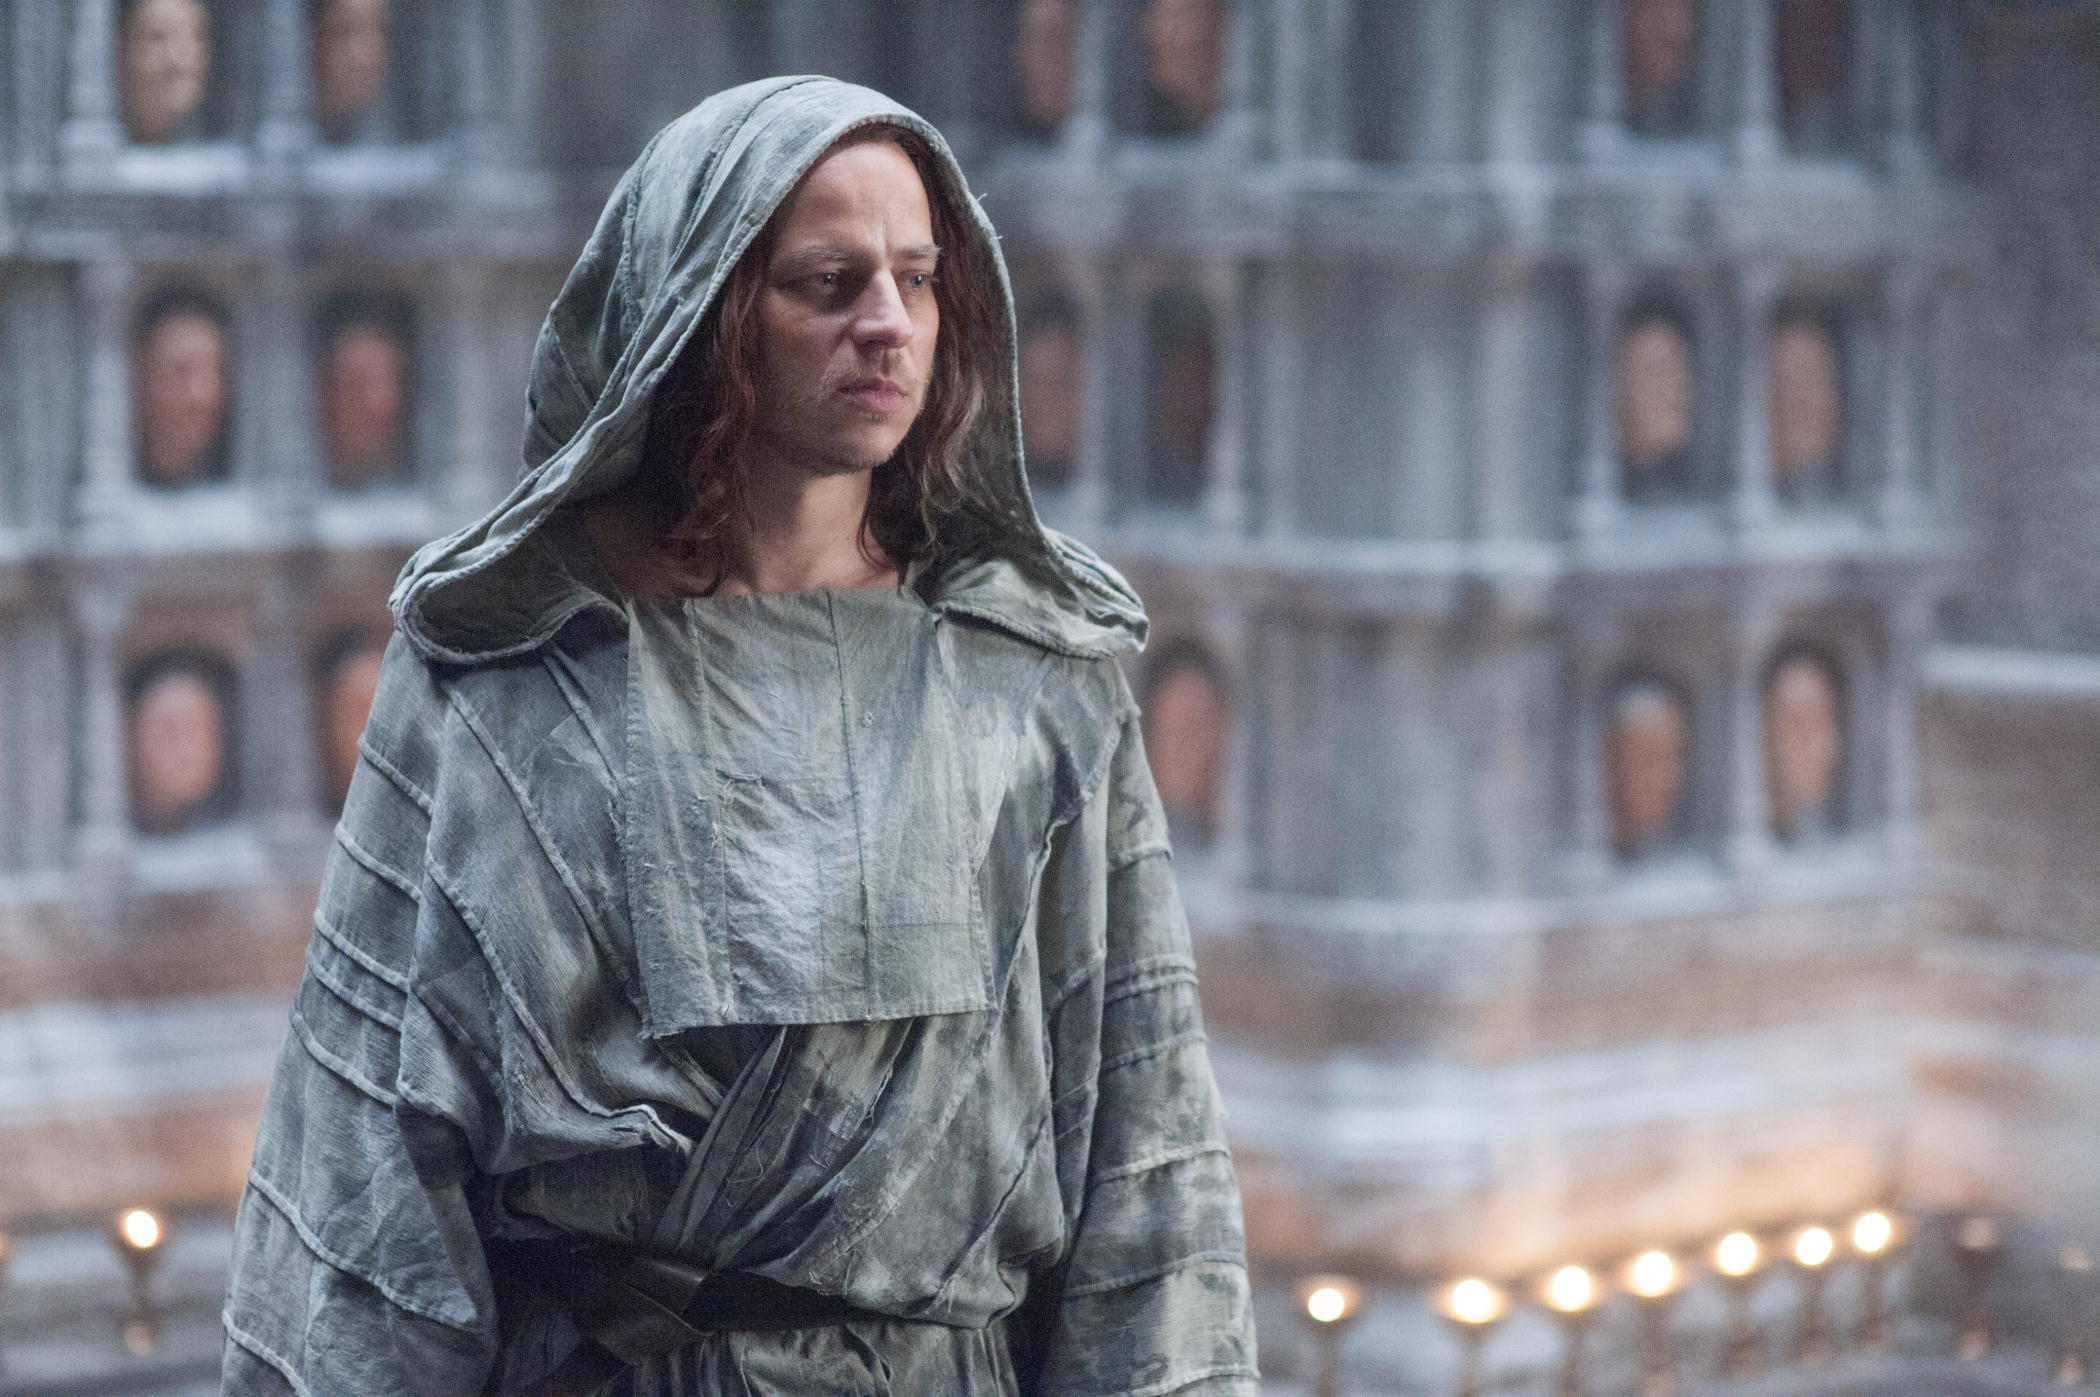 hottest game of thrones men jaqen